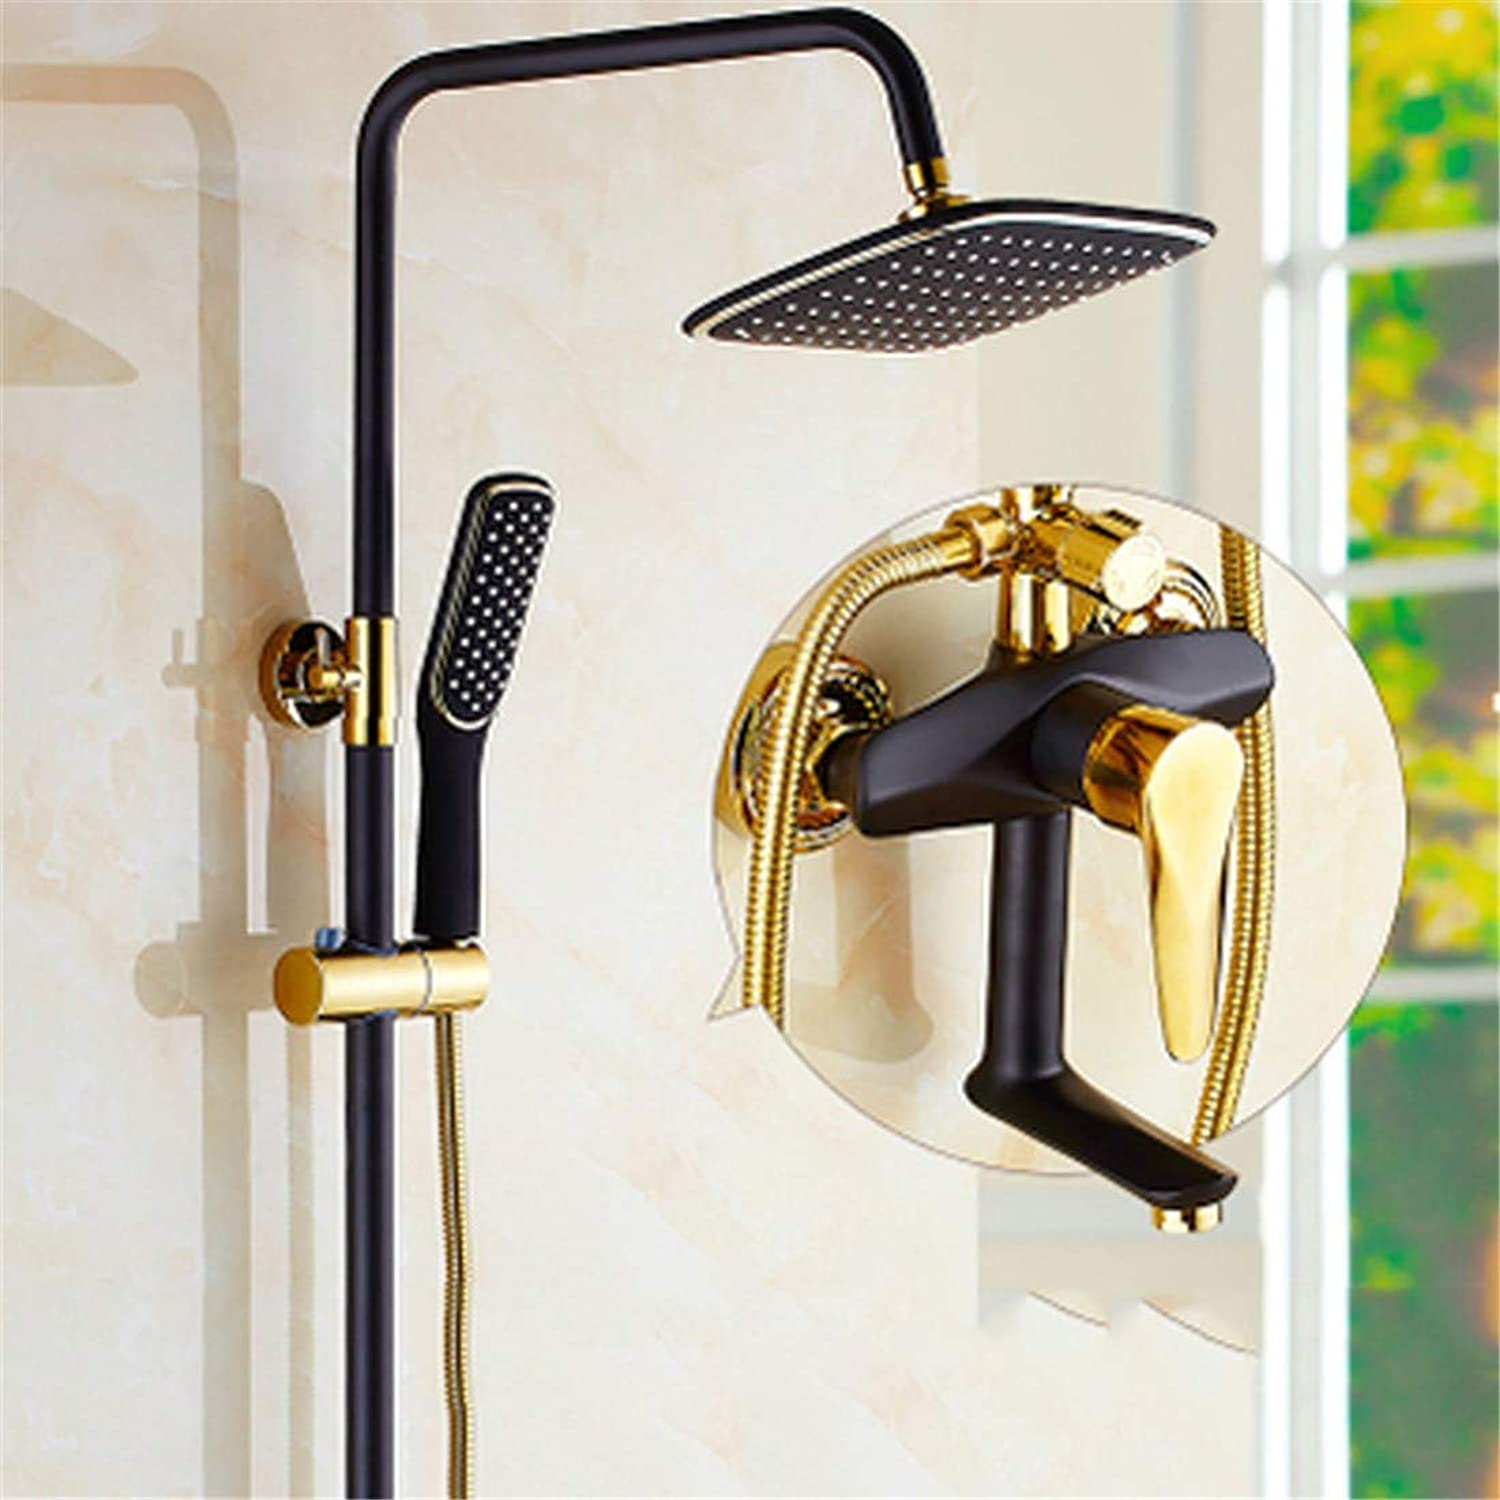 STAZSX-Faucet Brass multi-function shower head shower set, style 2